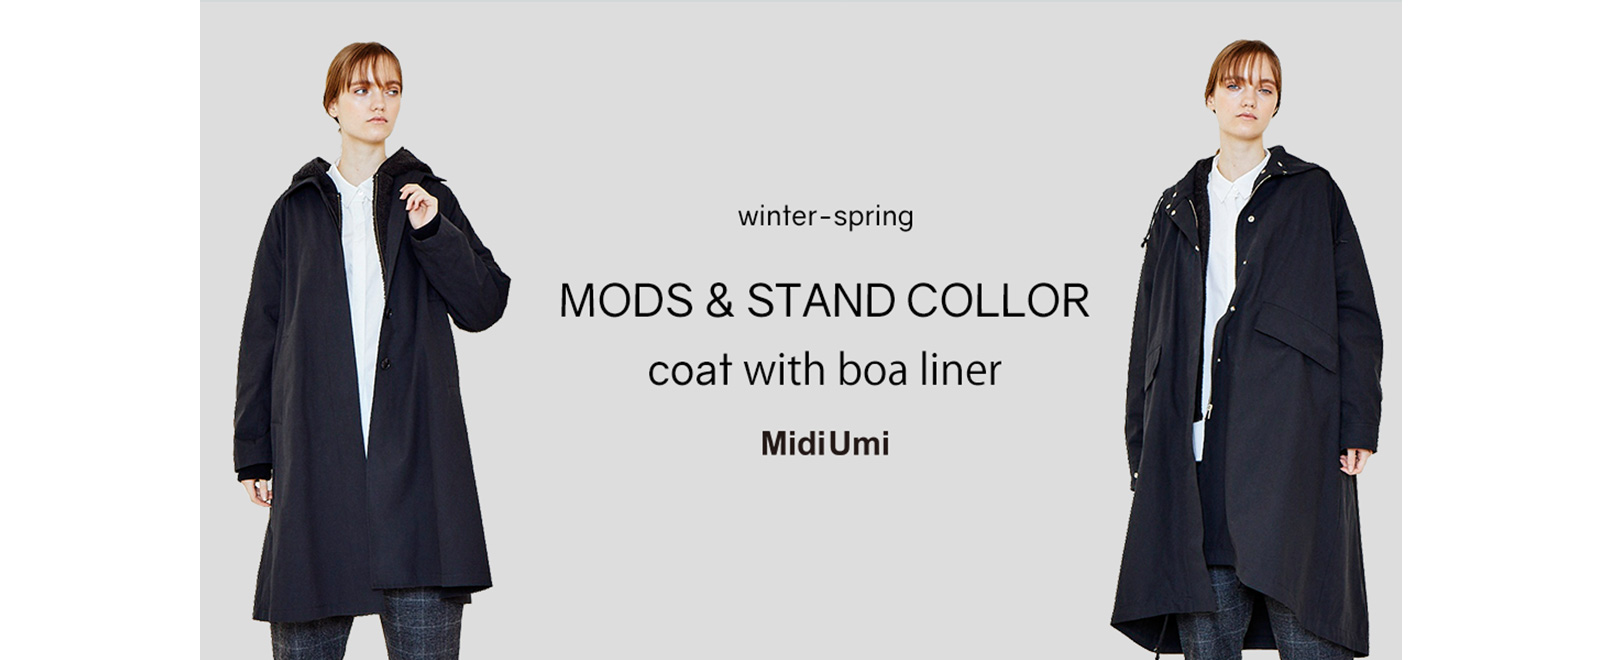 MidiUmi coat with boa liner